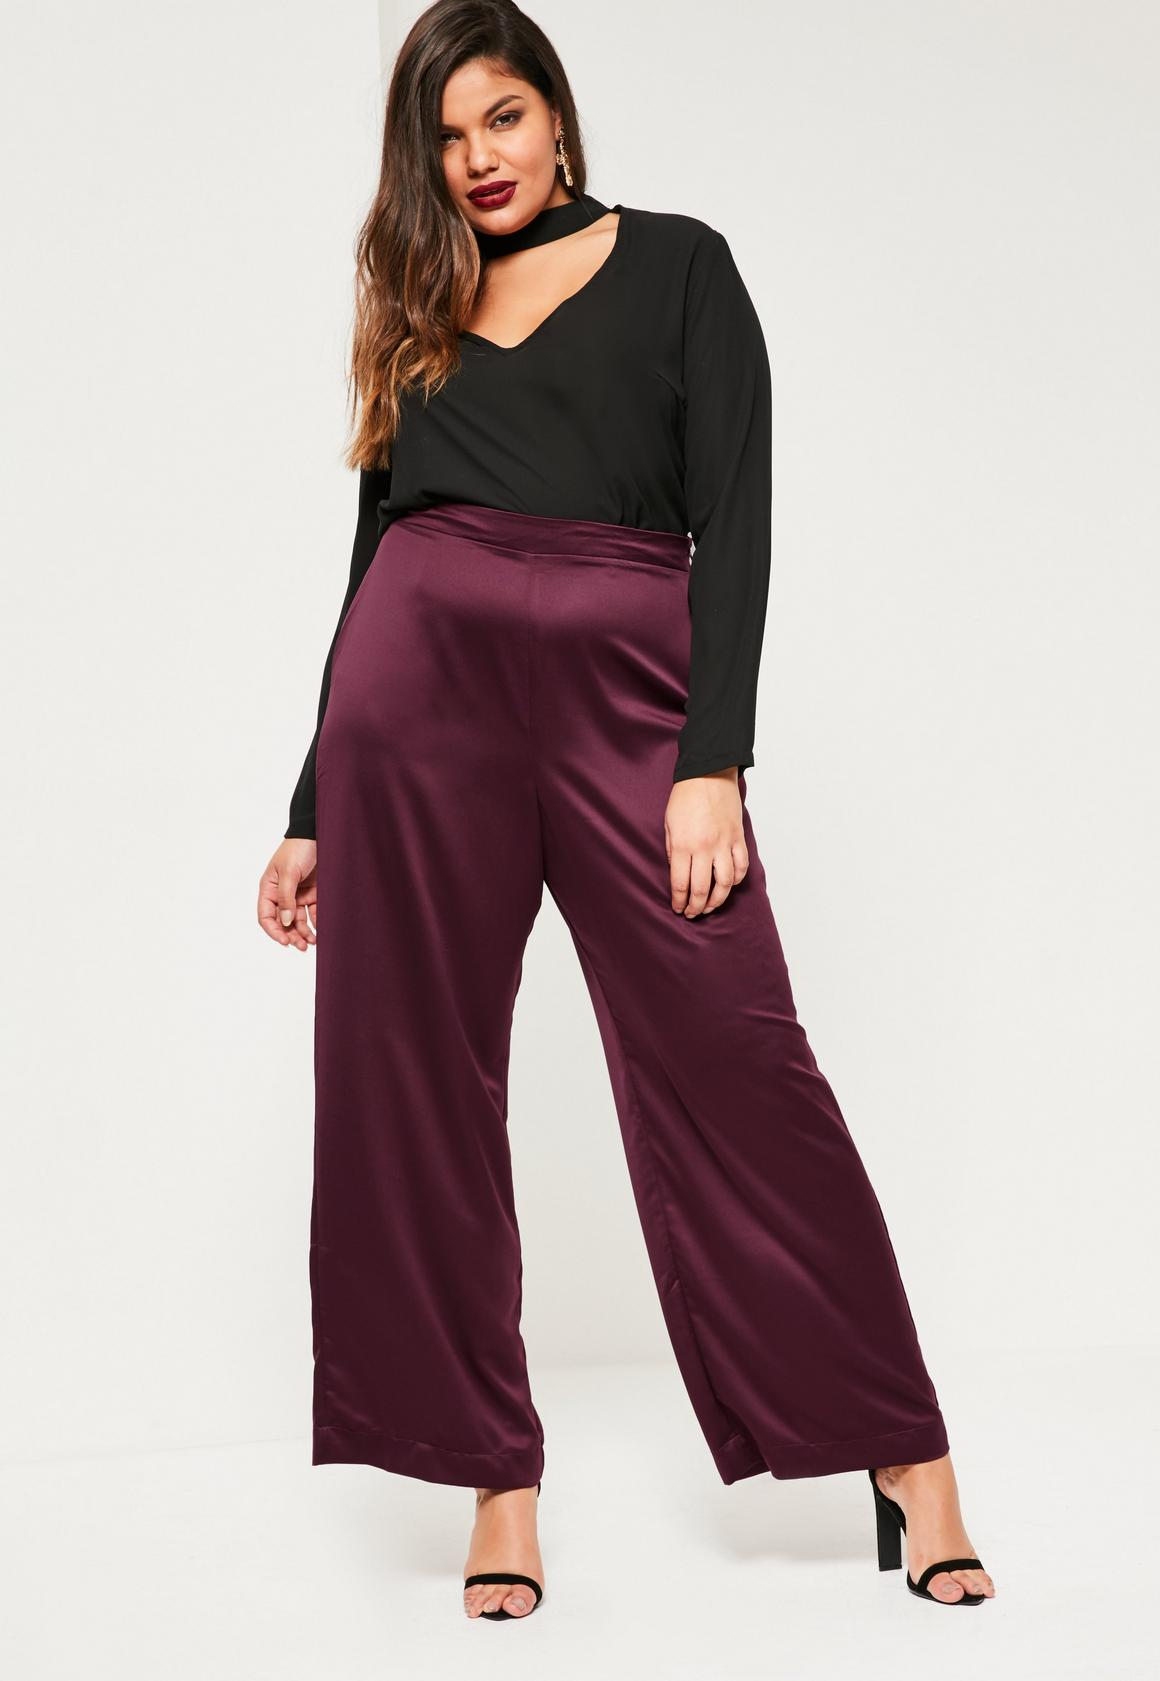 Plus Size Exclusive Purple Satin Wide Leg Pants - Missguided